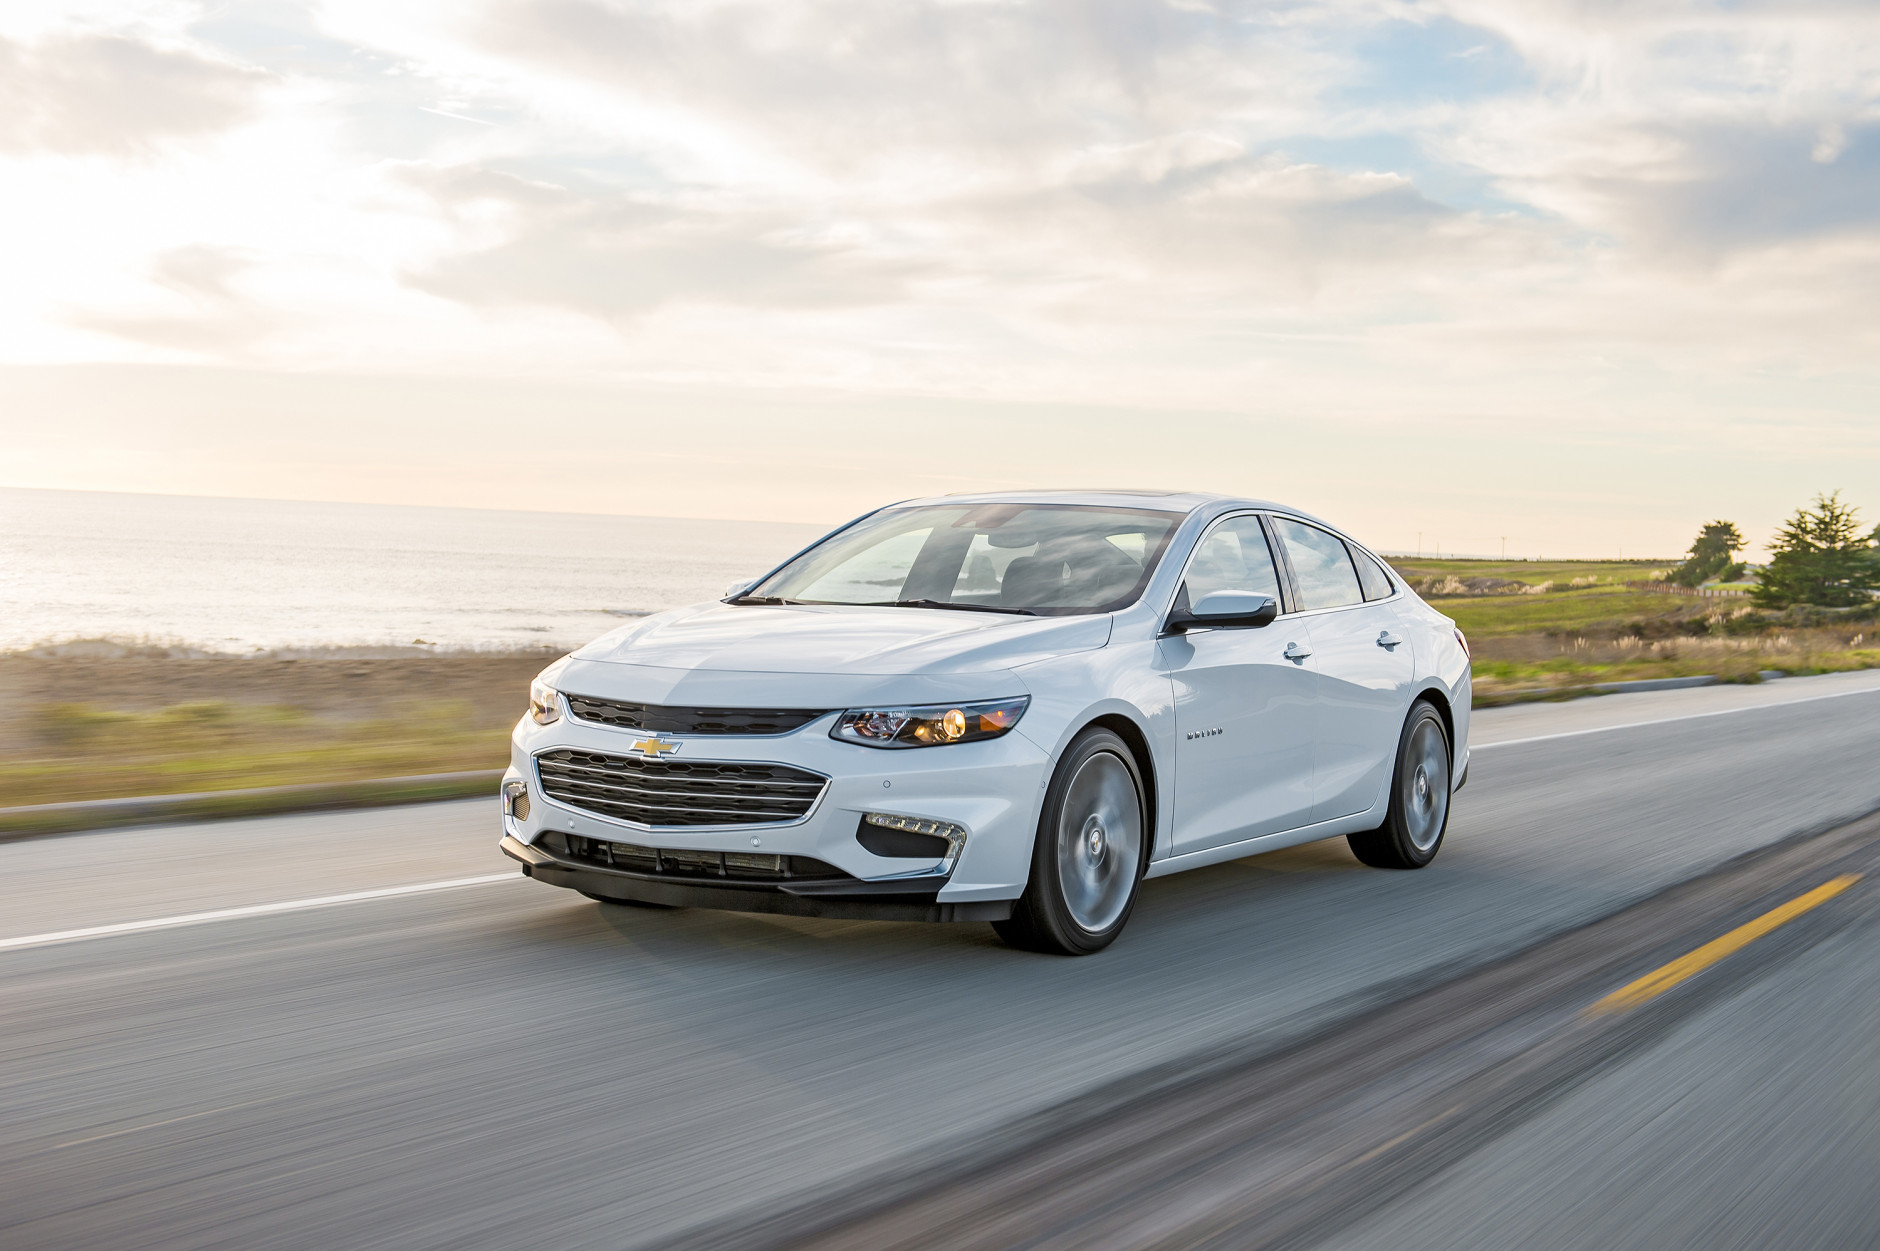 This undated photo provided by General Motors shows the 2016 Chevrolet Malibu. For 2016, the Chevrolet Malibu is newly styled and more fuel efficient, with more of the latest safety and tech features. (Jessica Lynn Walker/Chevrolet via AP) MANDATORY CREDIT